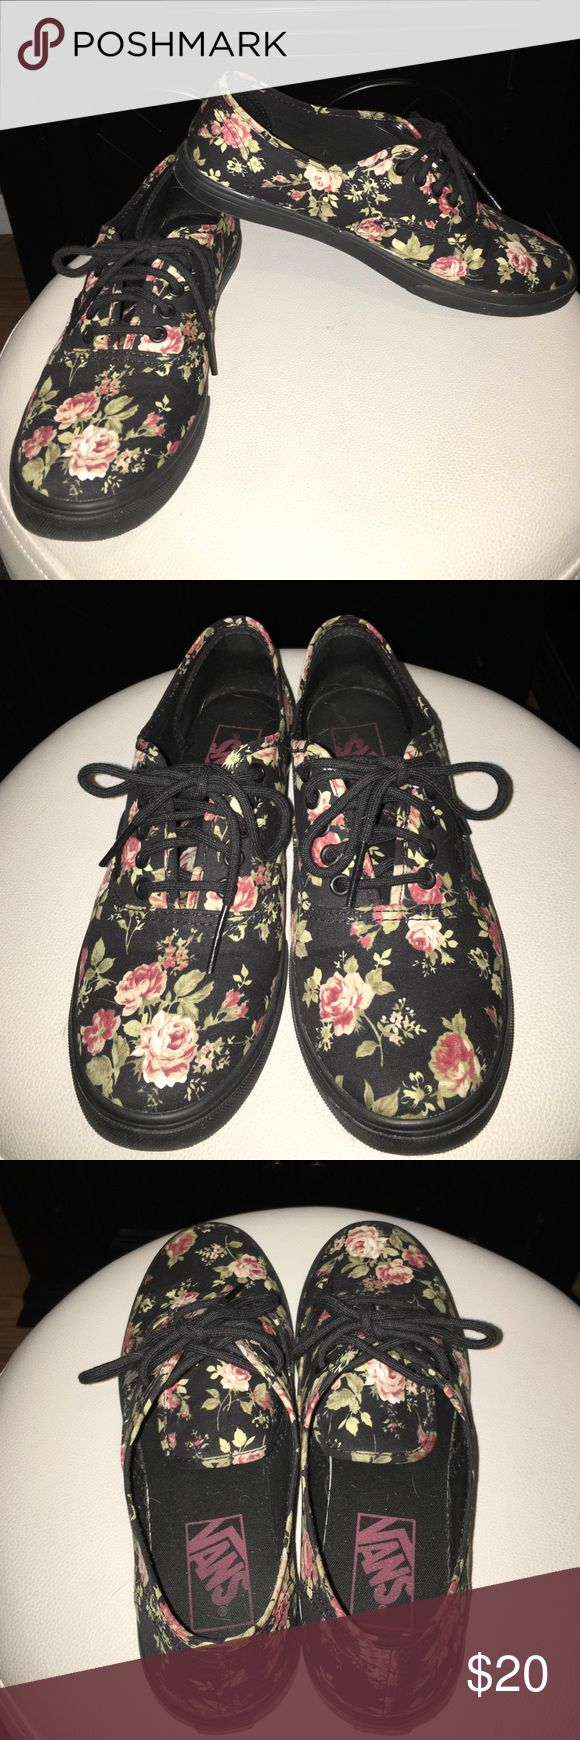 black floral vans lo pro , worn but taken super good care of and look brand new Vans Shoes Sneakers